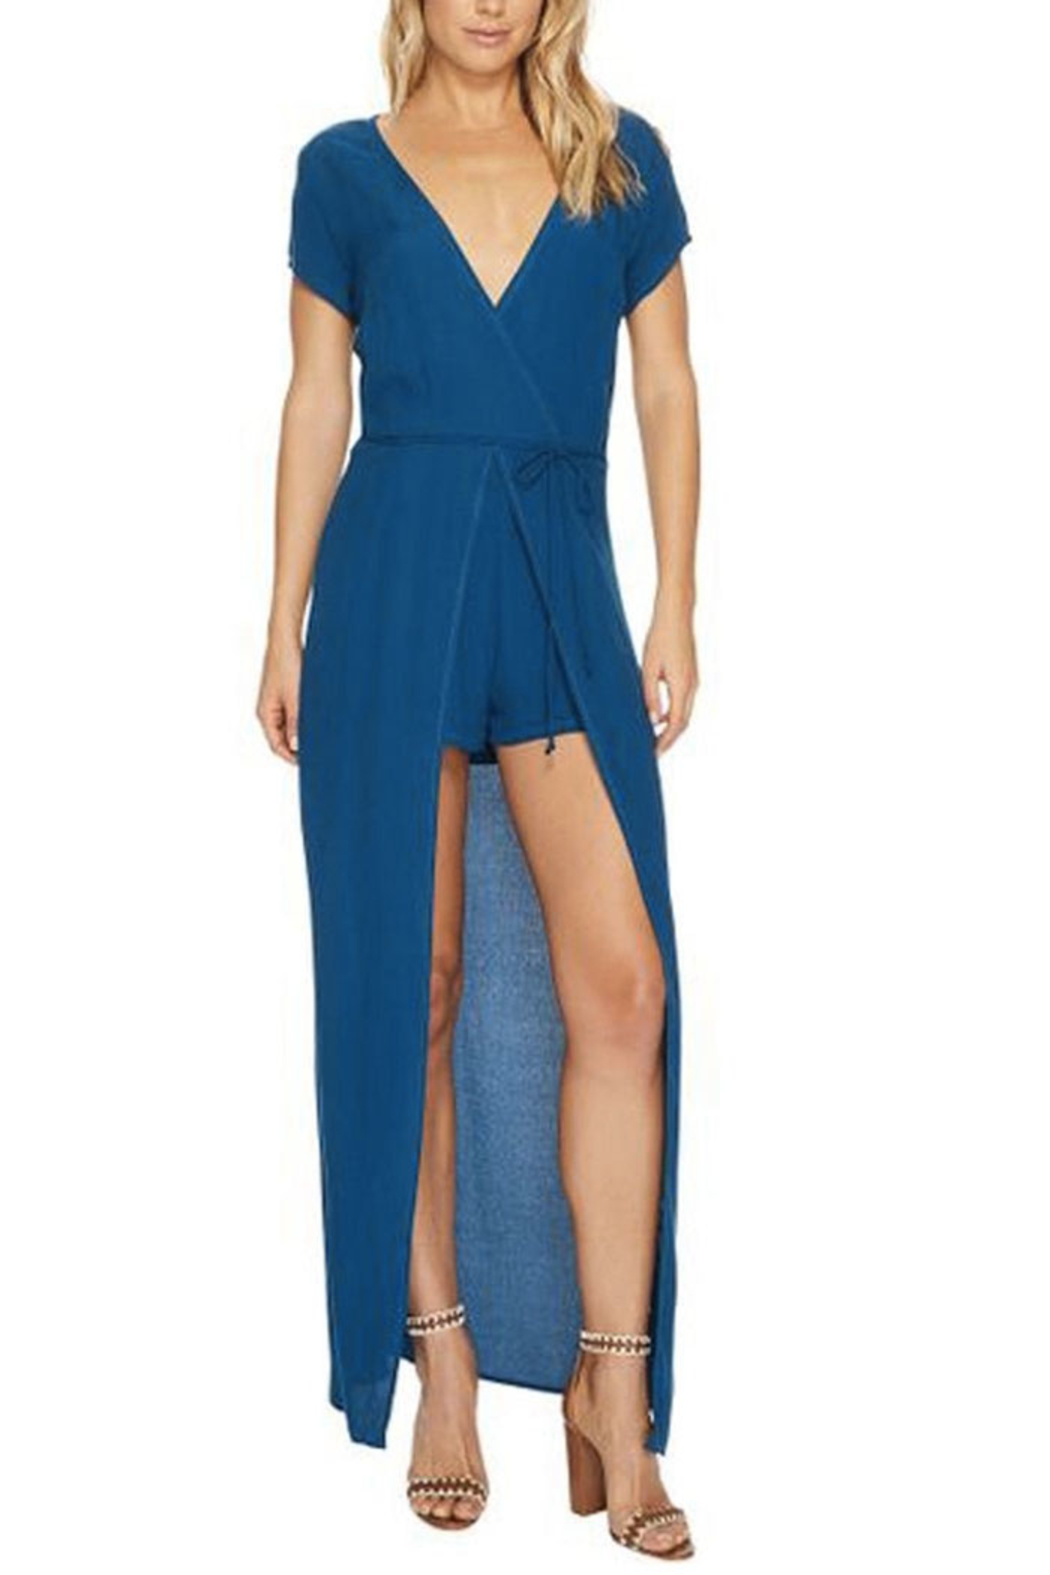 Lucy Love Lapis Romper Dress - Main Image